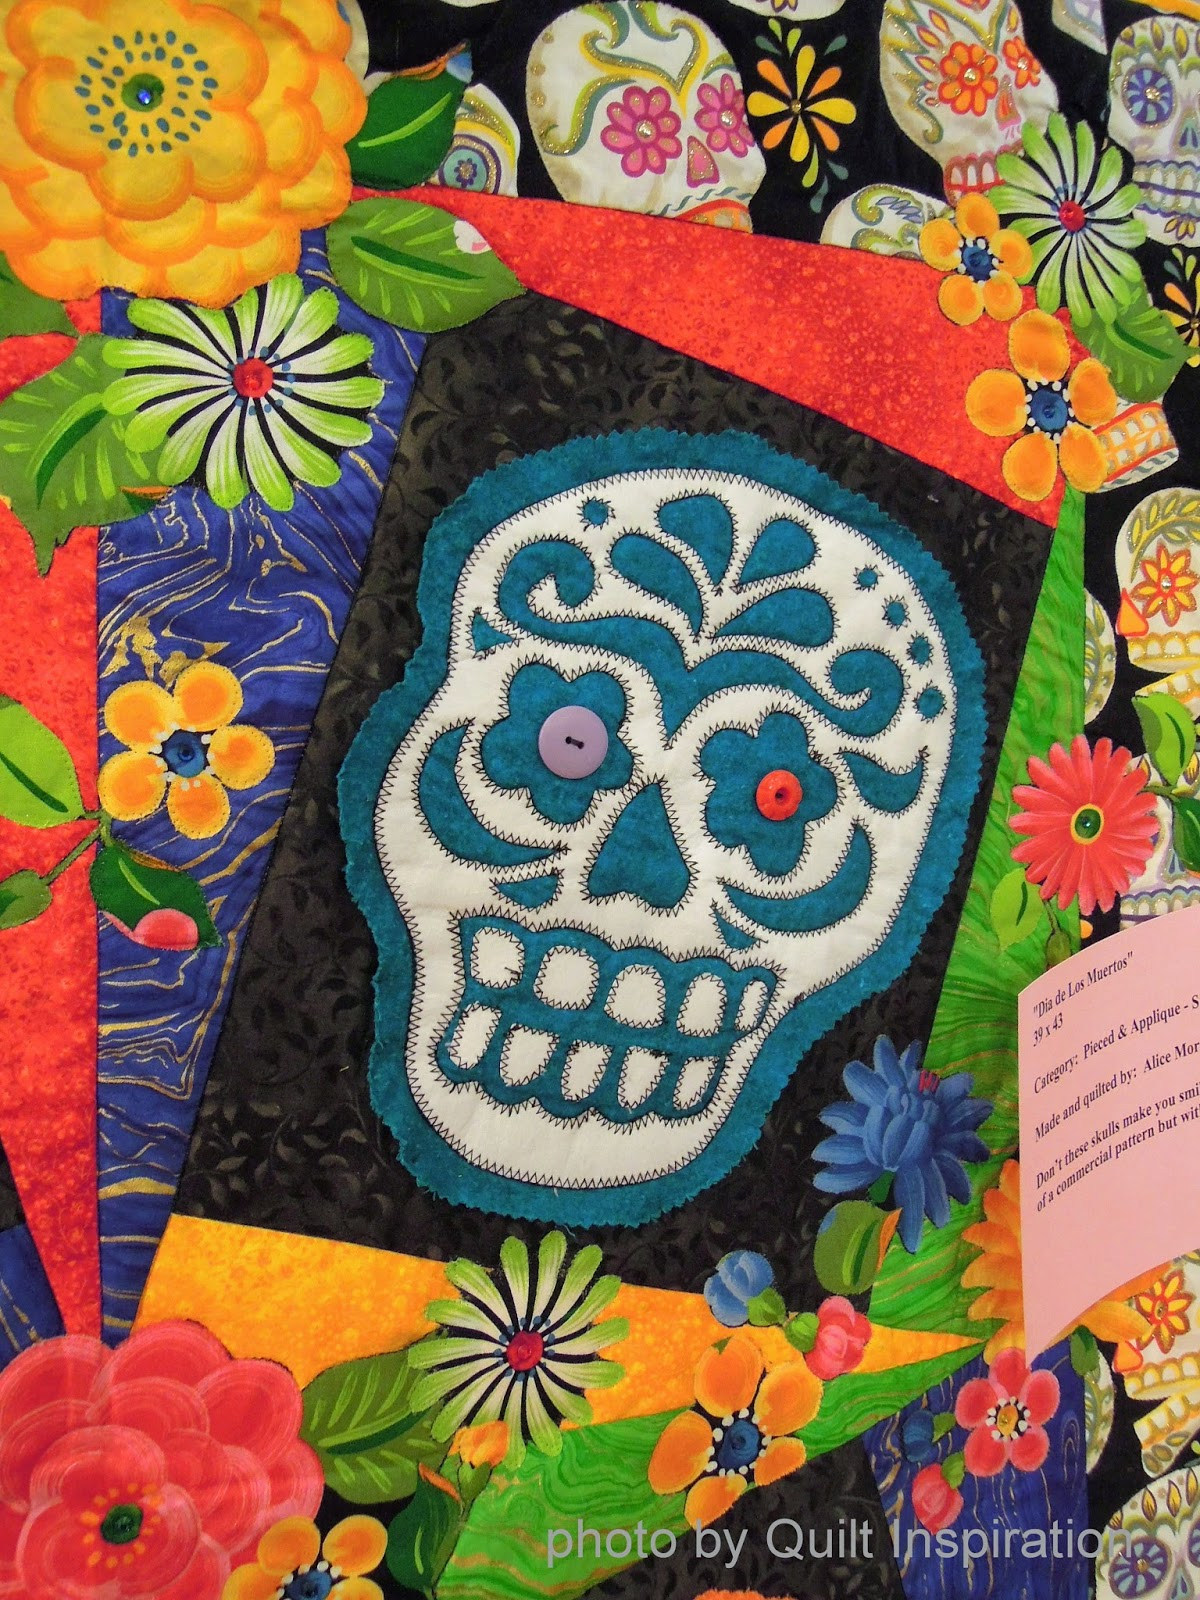 Quilt Inspiration: Quilts (and free patterns) for Dia de los Muertos!